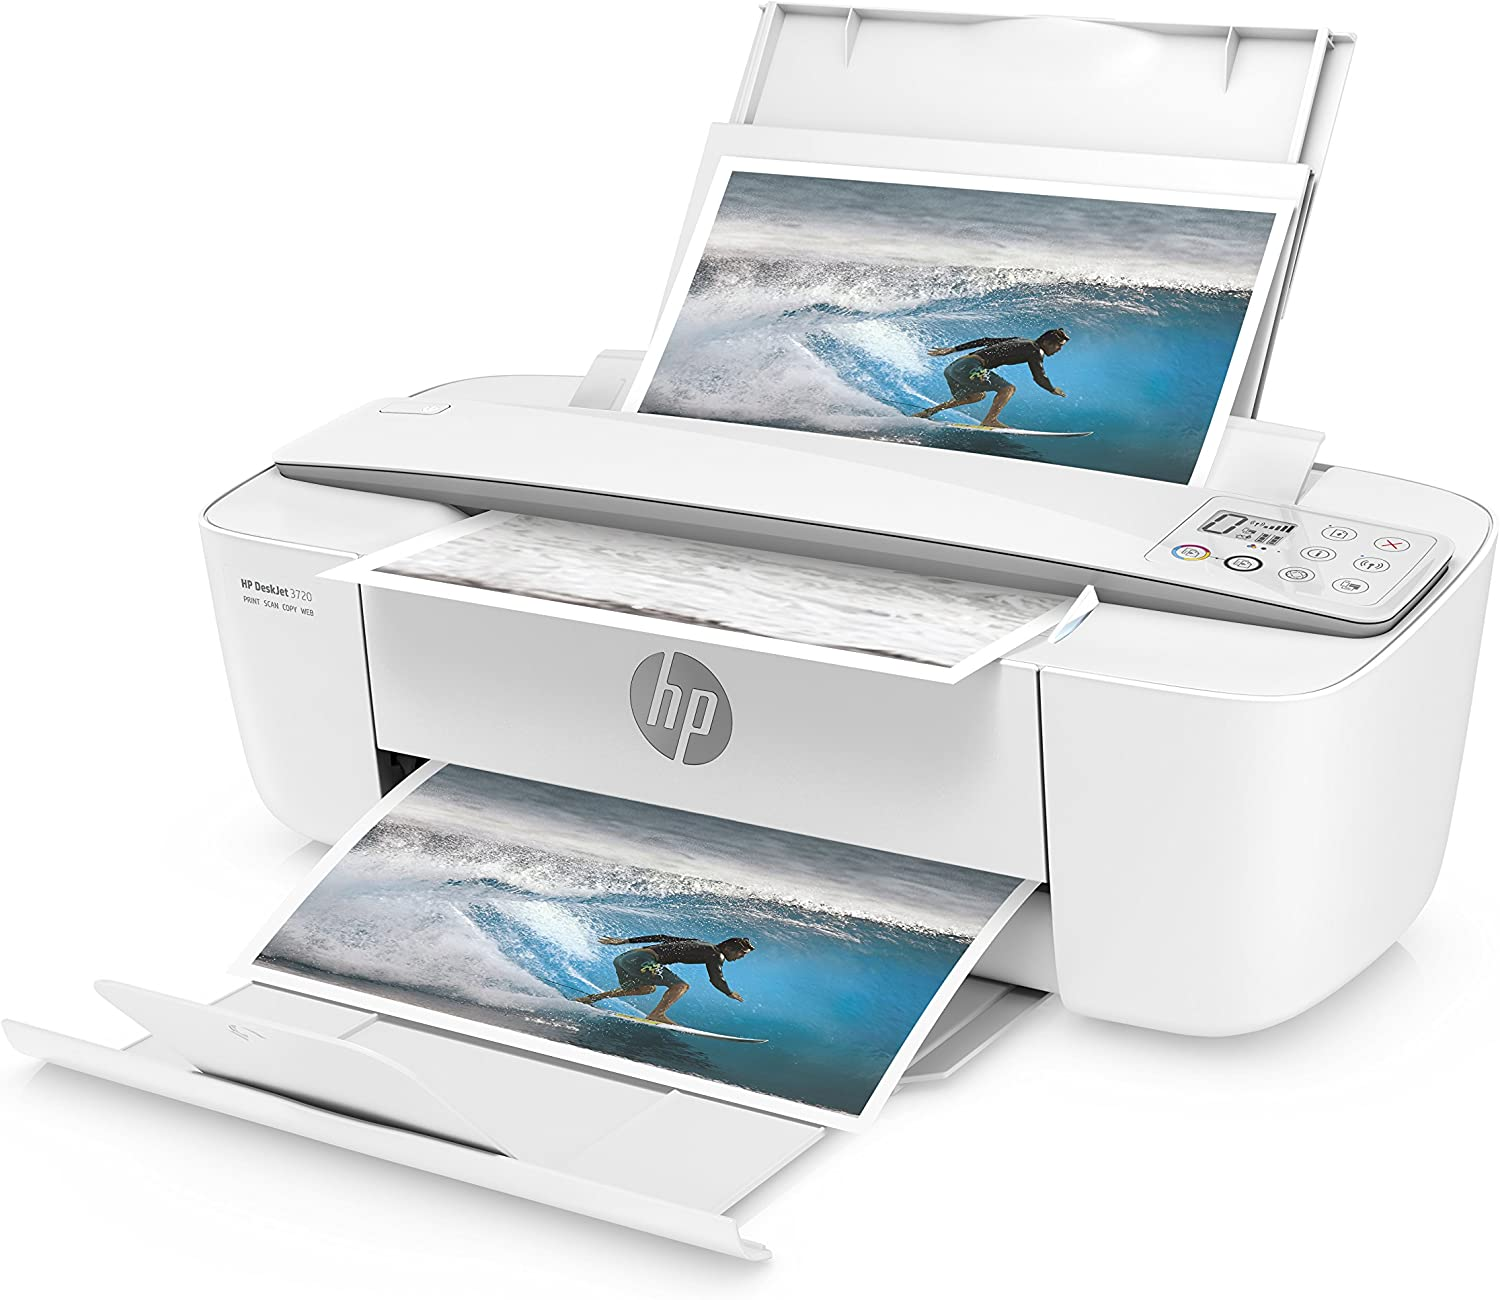 HP DeskJet 3720 AiO - DeskJet 3720 All-in-One printer: Amazon.es ...